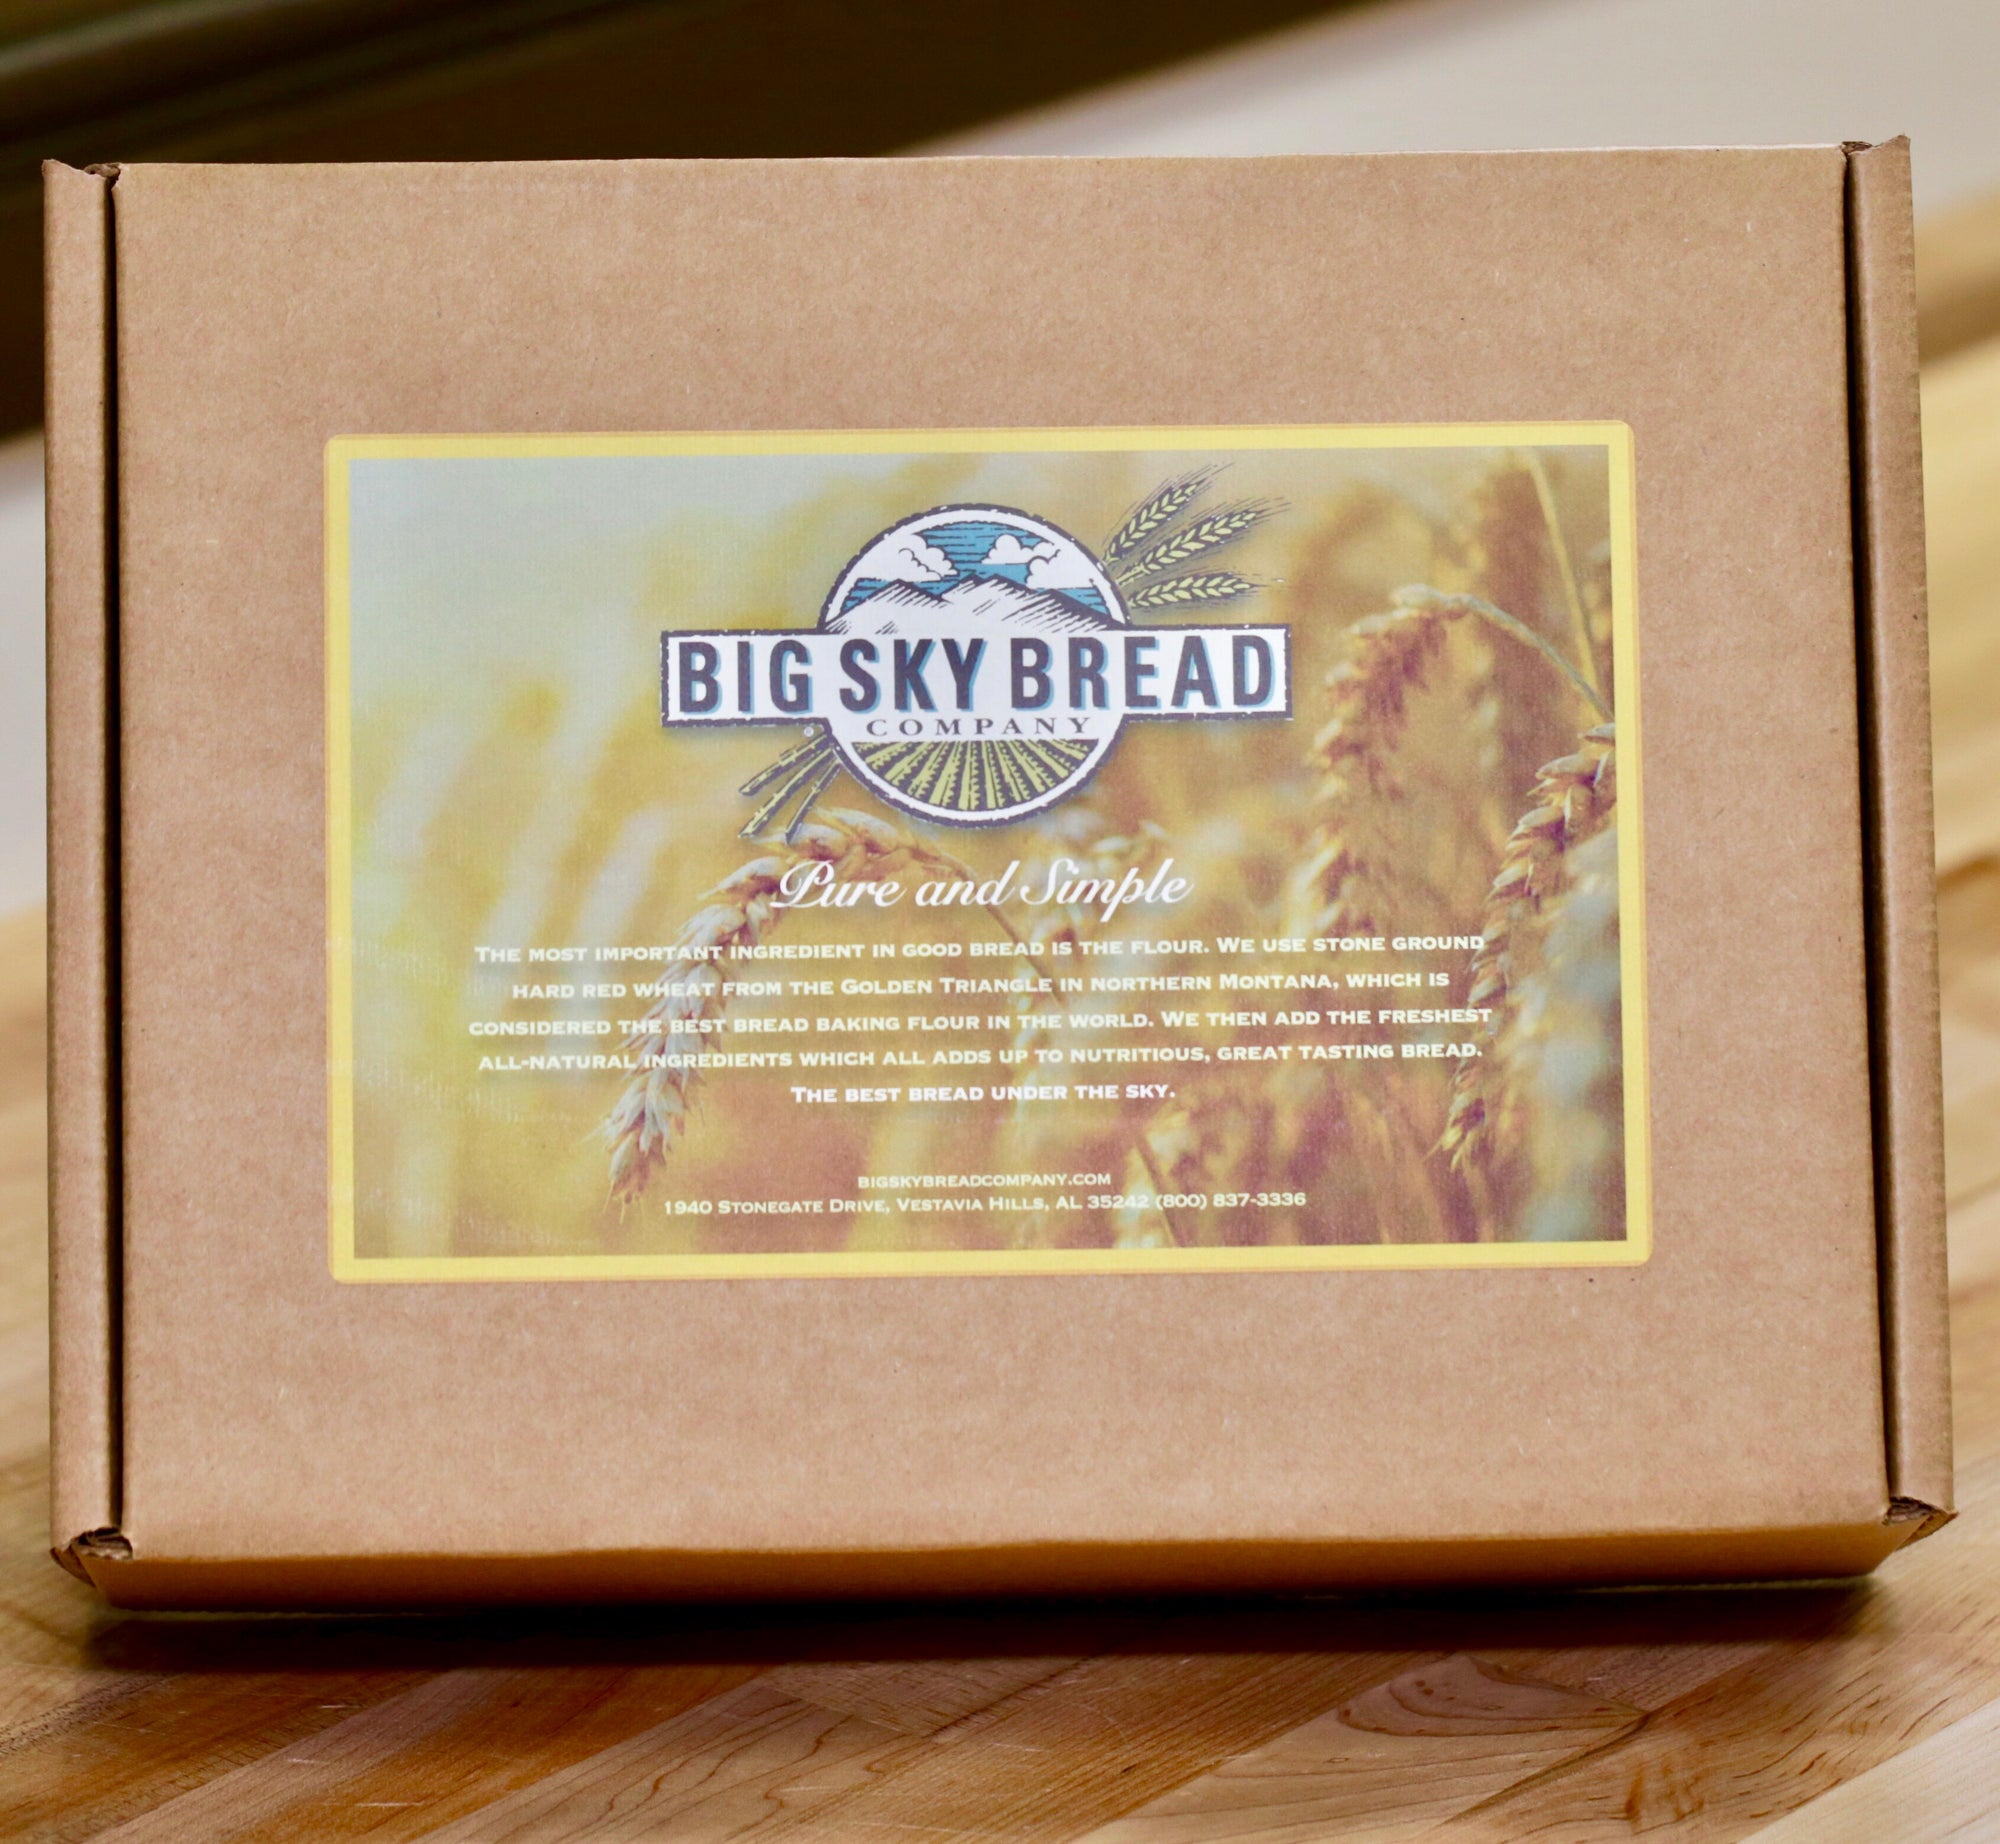 Big Sky Bread Company gift boxes are a fresh new gift idea.